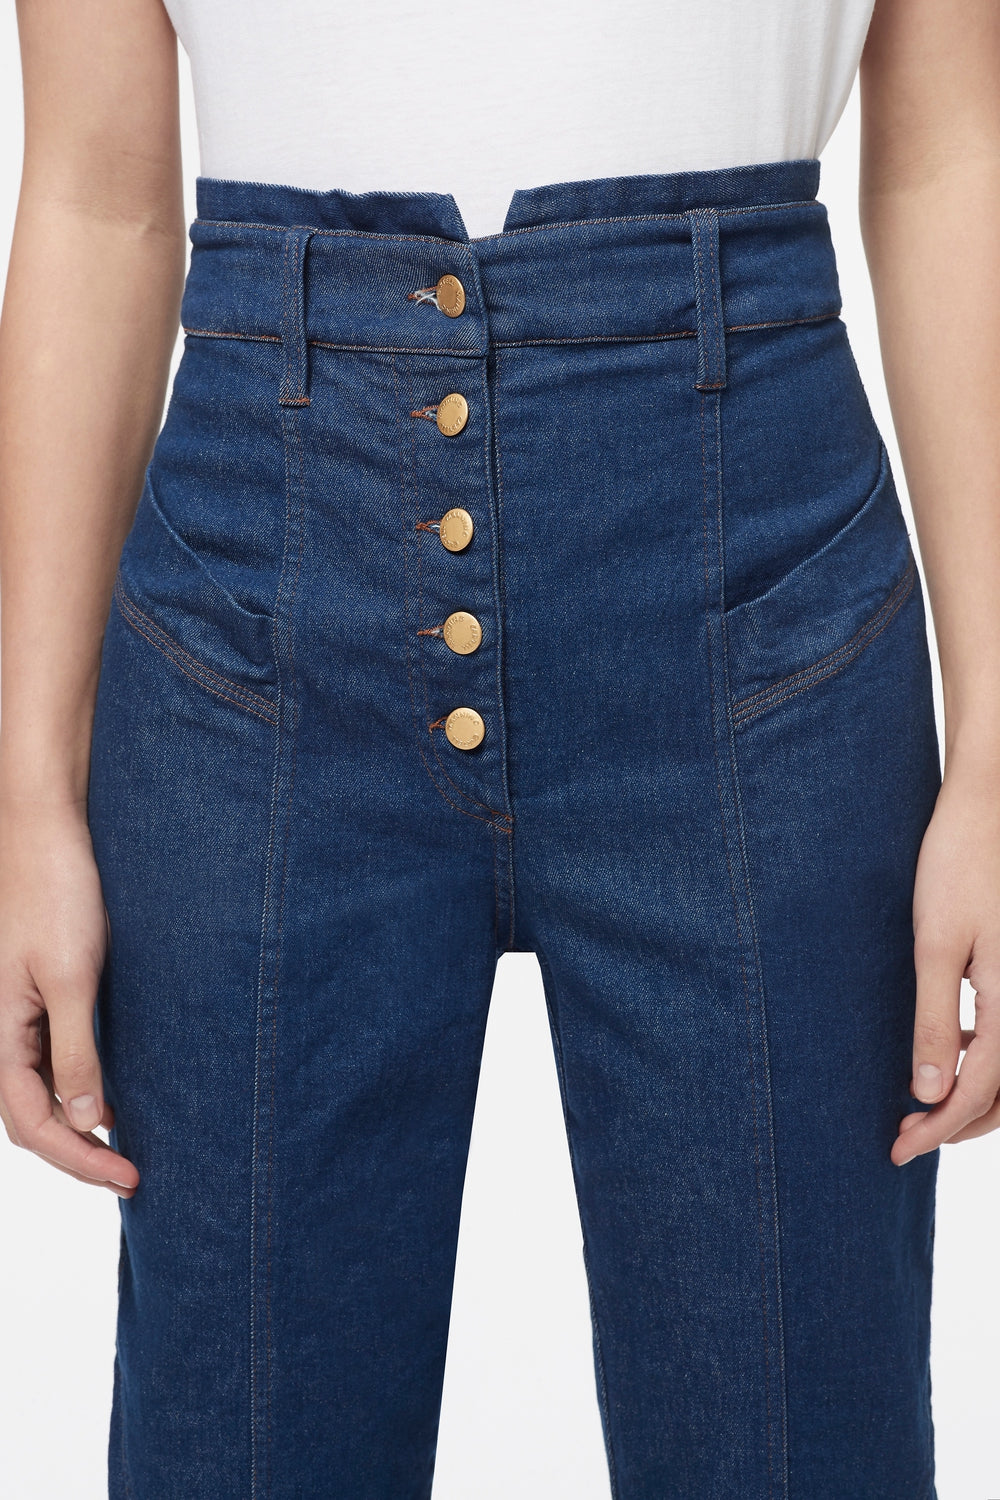 FADED GLORY DENIM JEAN